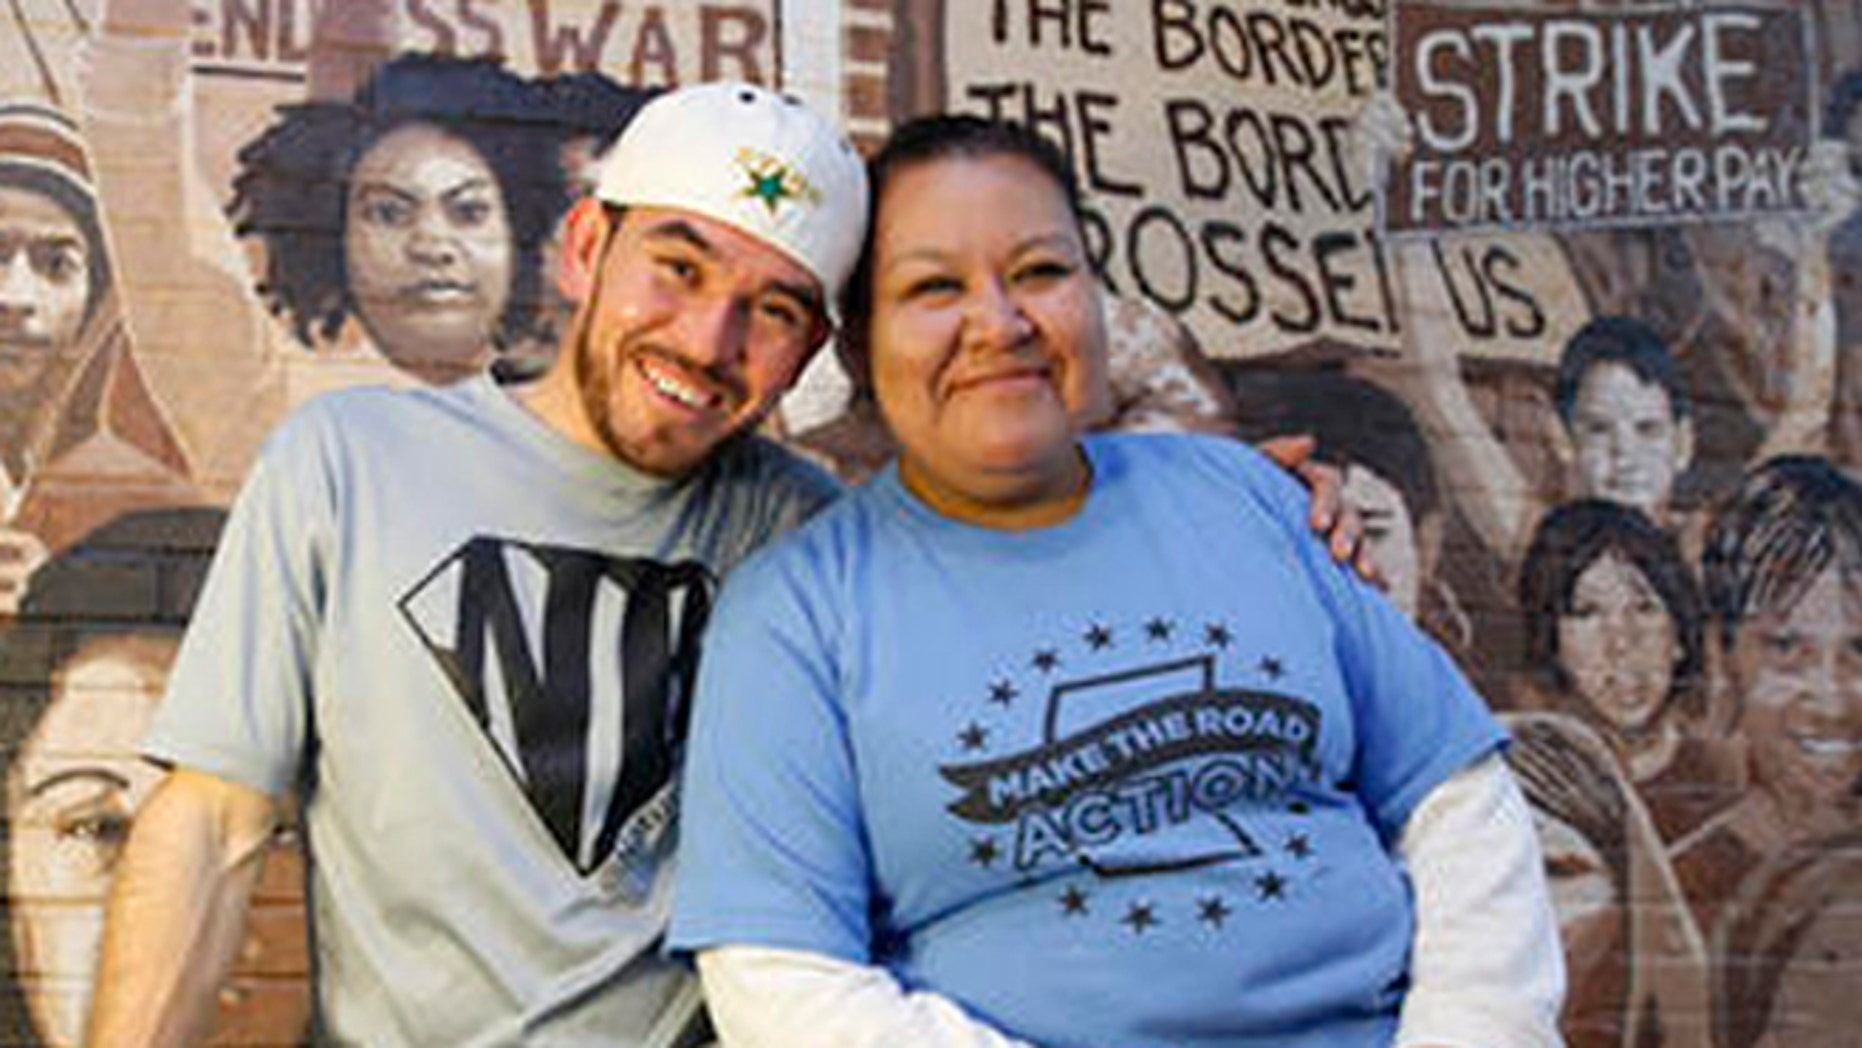 In this Wednesday, Oct. 26, 2016 photo, Guatemalan immigrant and construction worker Mauricio Pelaez-Alvarez, 33, left, poses for a photograph with immigrant rights activist Juana Alvarez, 39, (no relation) after each shared their thoughts with The Associated Press about the upcoming presidential election at Make the Road New York's Brooklyn offices in New York. Although Alvarez has lived in the United States since she emigrated at age 16, and Pelaez-Alvarez has been in the U.S. for ten years, neither can vote in the November election.  (AP Photo/Kathy Willens)